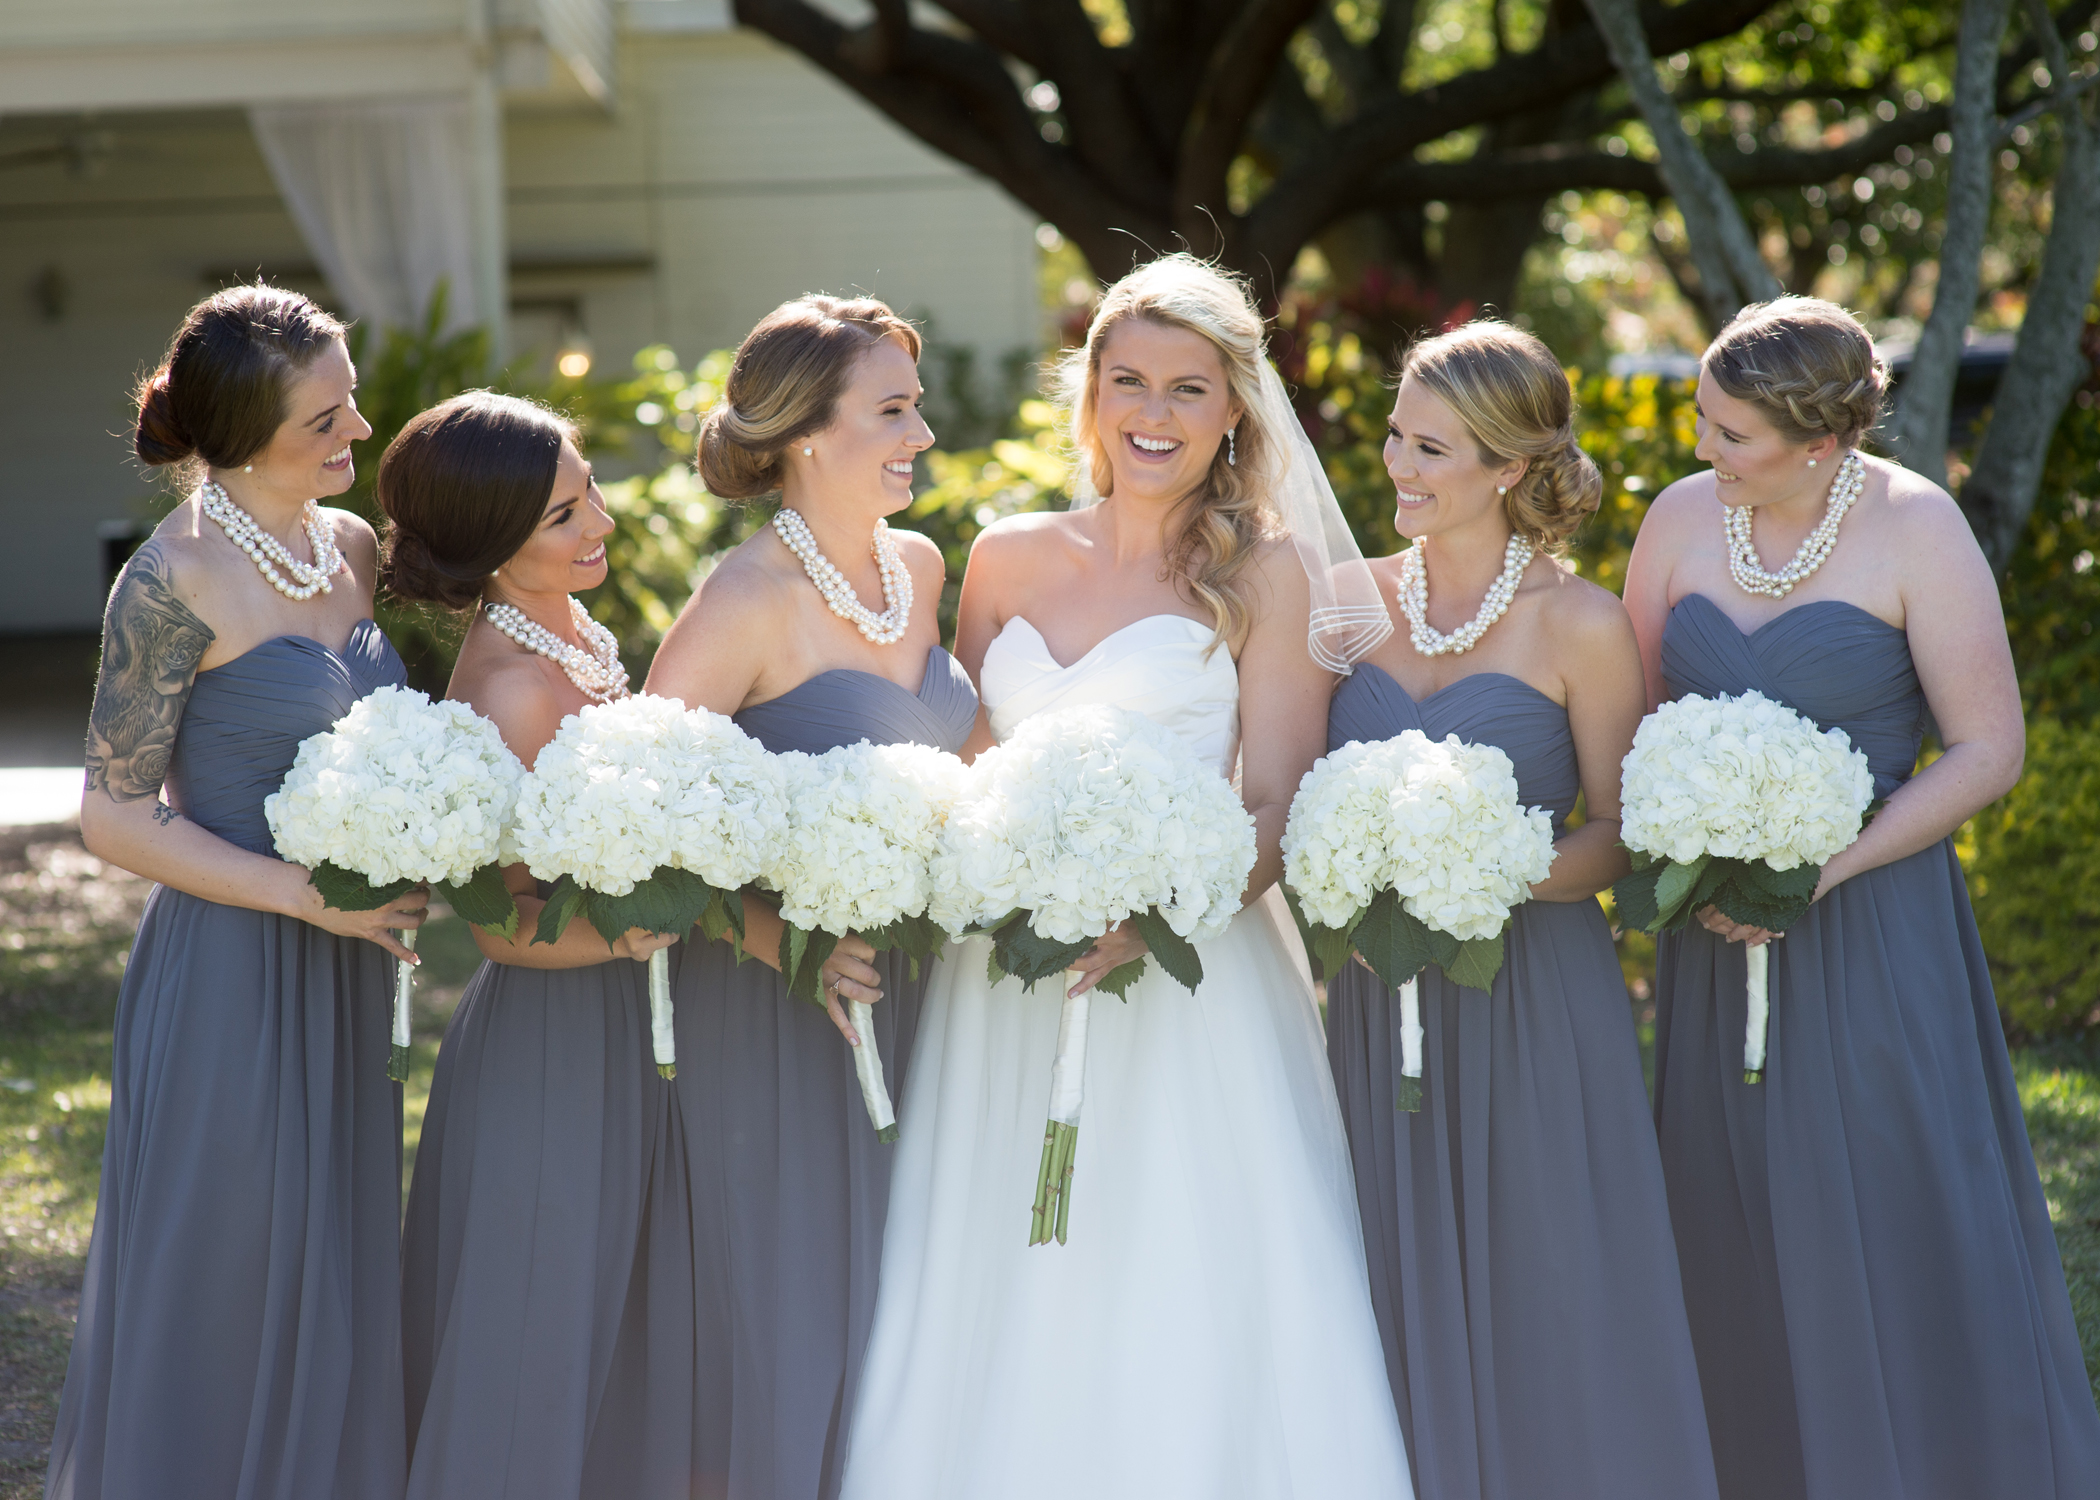 Fluffy hydrangea accented the reception tables and the bouquets.